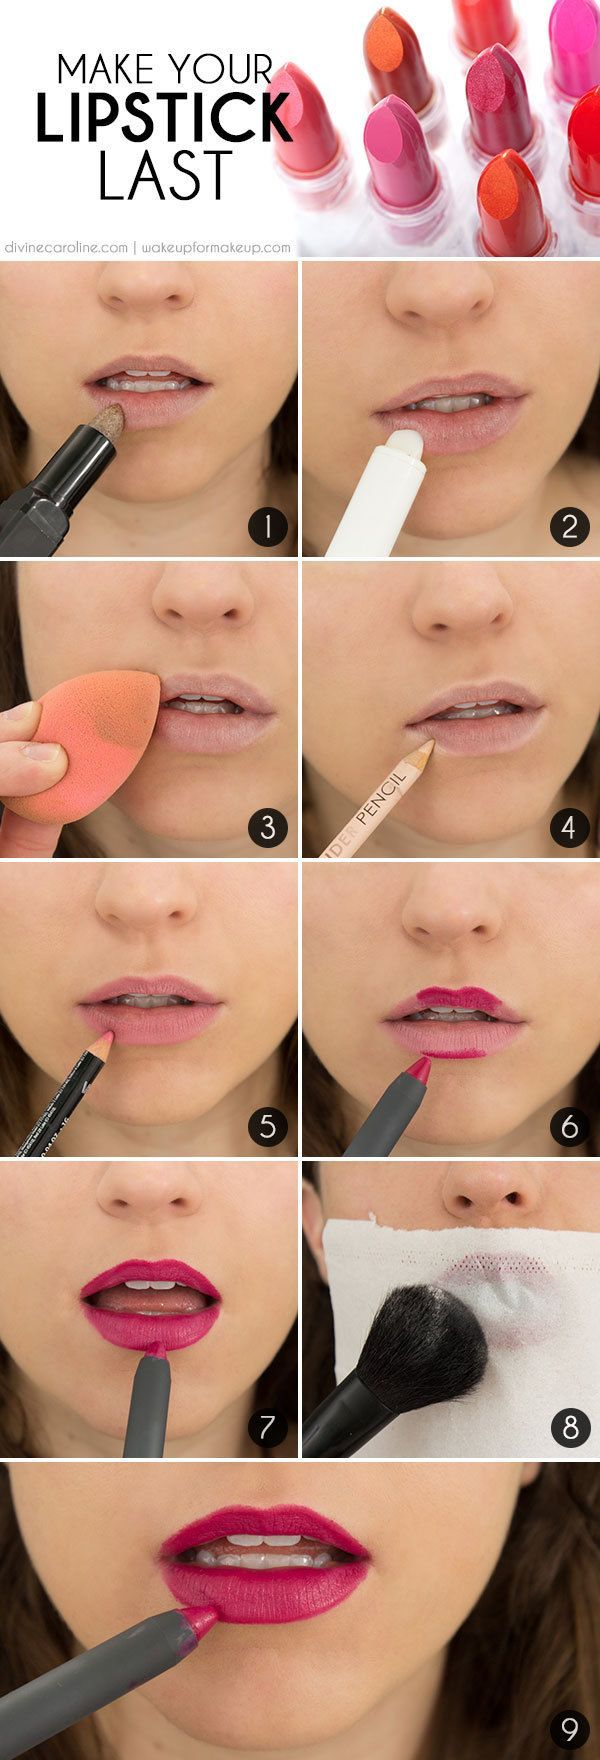 Make Up | Make Your Lip Color Last: The Secret to Long-Lasting Lipstick ....... Feel like your lipstick is always running out on you? ....... Want it to hang out a little longer? ......... Here are 9 steps to lock those lips into place!............Kur <3 <3